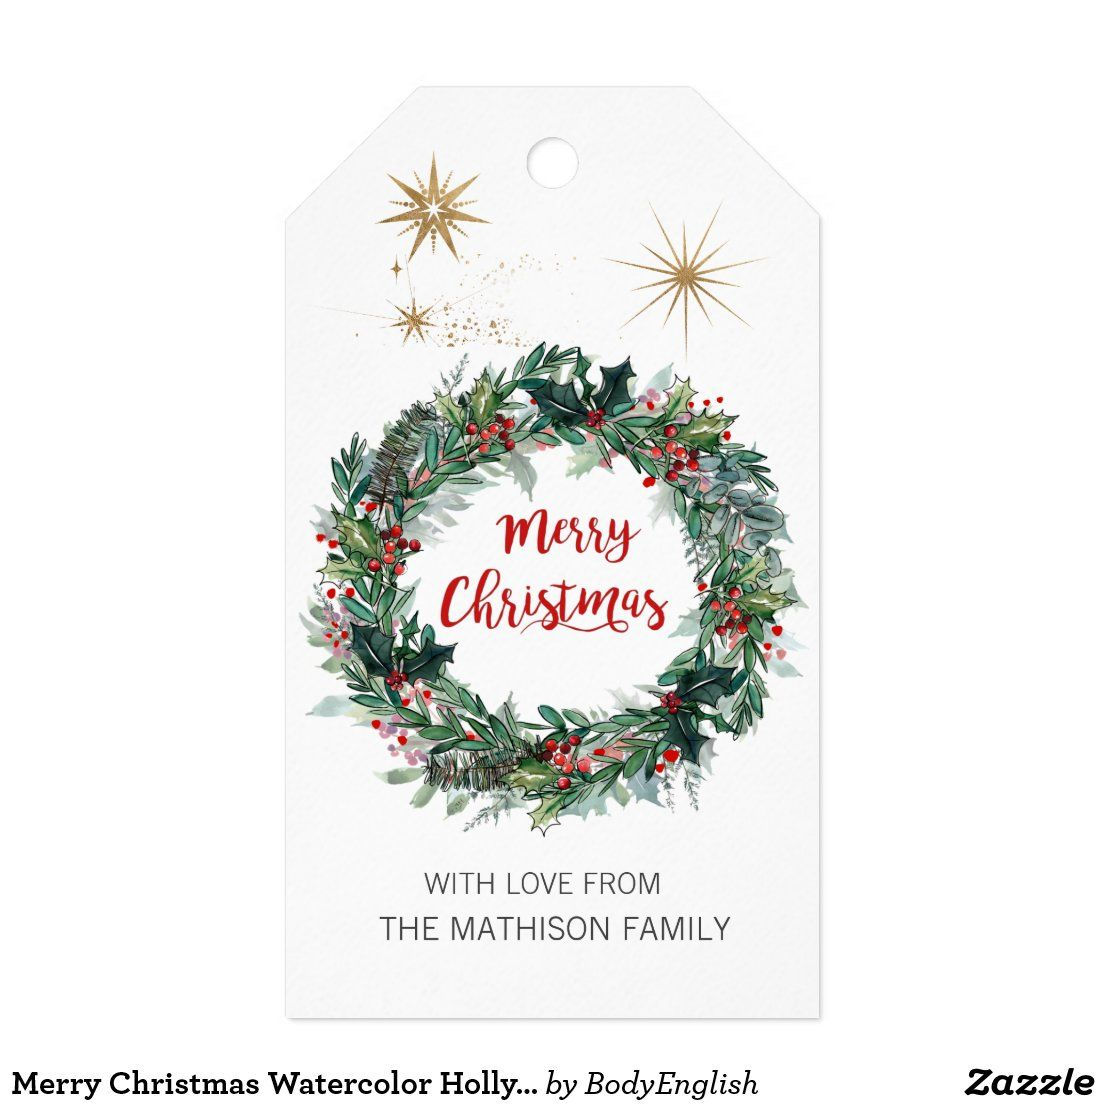 Merry Christmas Watercolor Holly Berry Foliage Gift Tags #merrychcristmasgifttag #christmaswreathgifttag #christmas #merrychristmas